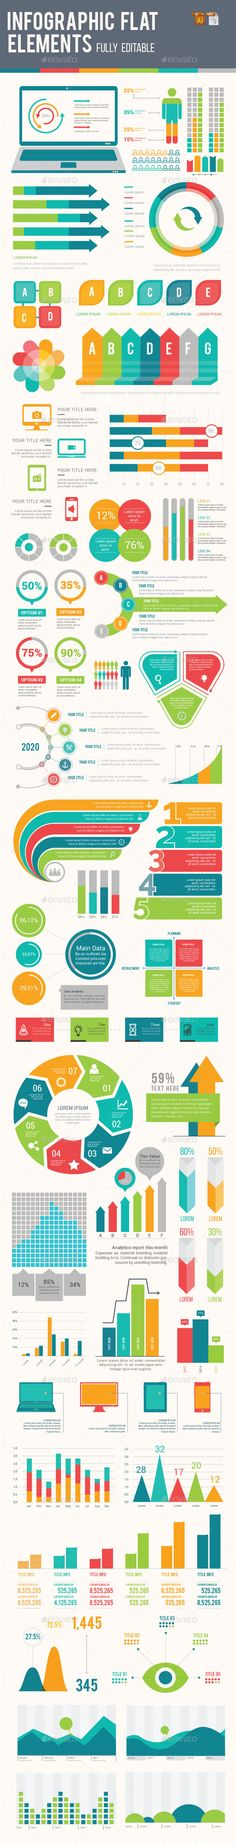 Infographic Tutorial infographic tutorial illustrator cs3 templates for word : Infographic Flat Elements Design 3 | Infographic, Flats and Ai ...